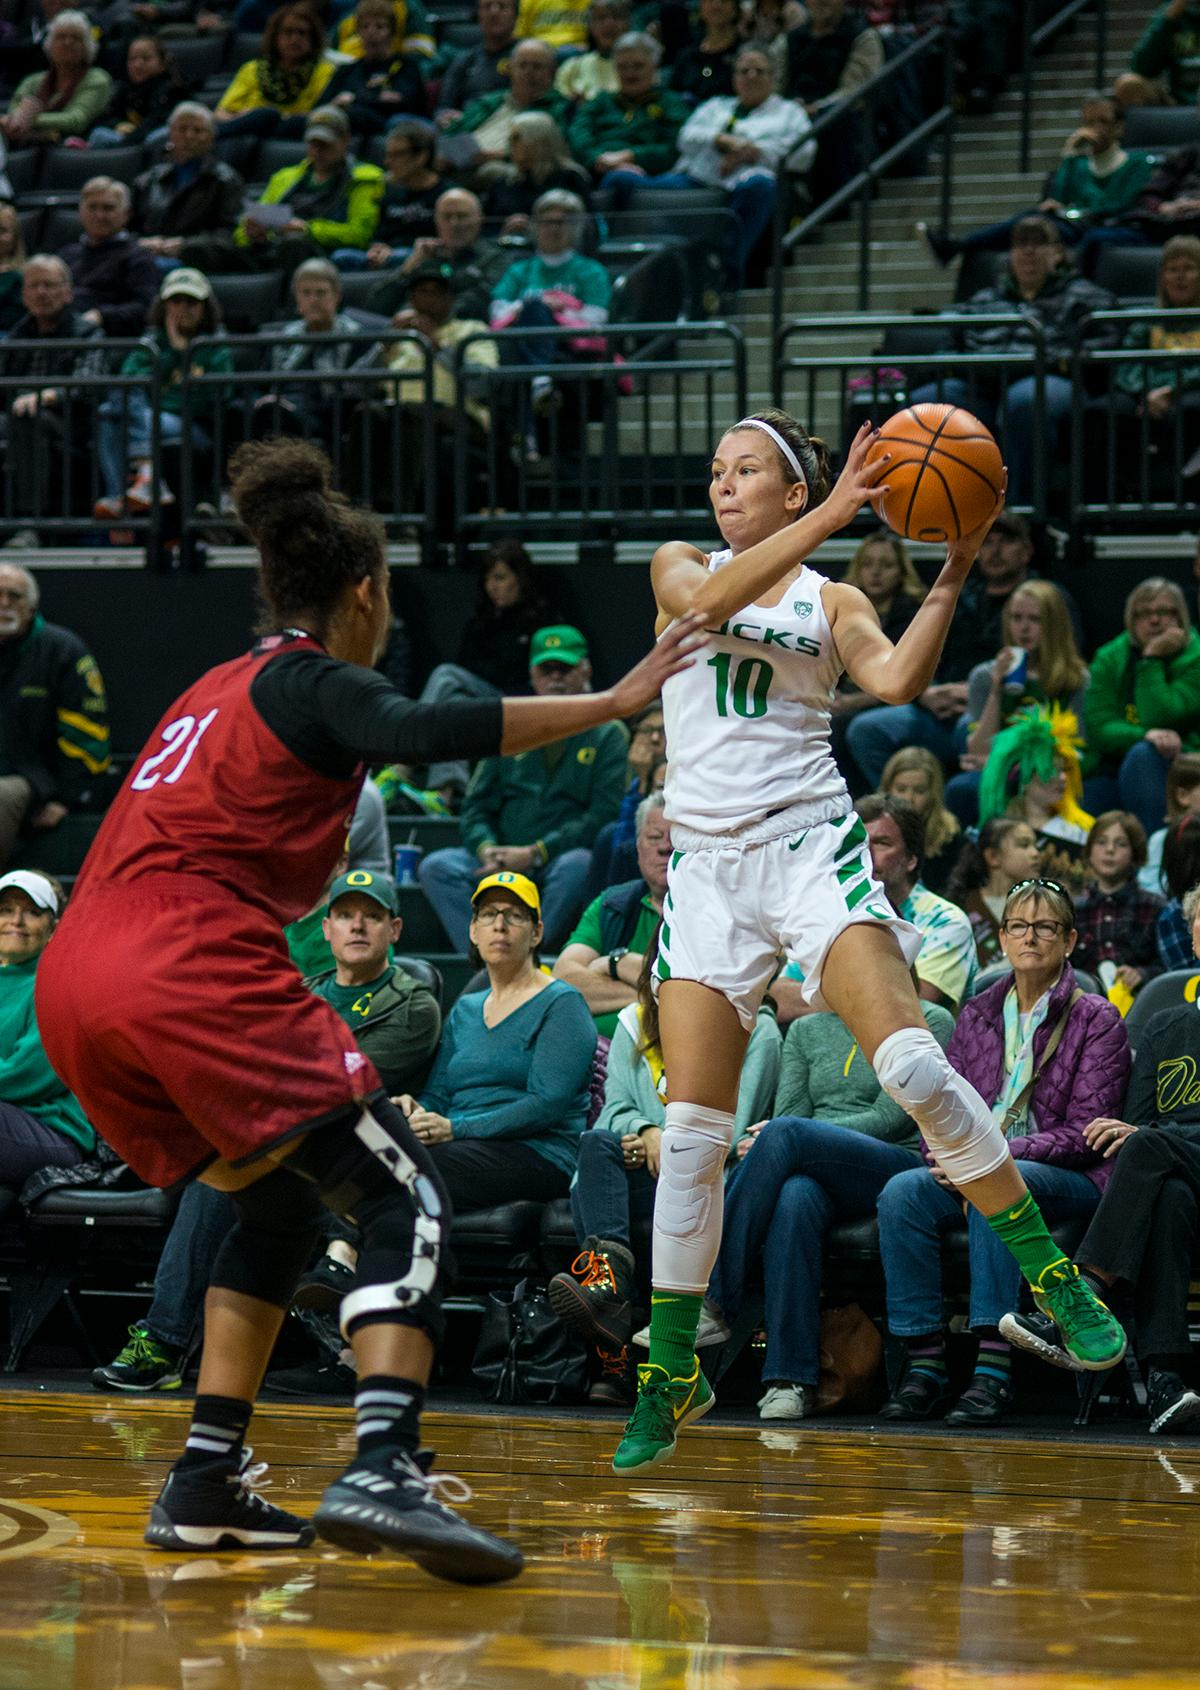 Oregon Ducks Lexi Bando (#10) keeps the ball away from Southern Utah's defender. The University of Oregon Ducks women basketball team defeated the Southern Utah Thunderbirds 98-38 in Matthew Knight Arena Saturday afternoon. The Ducks had four players in double-digits: Ruthy Hebard with 13; Mallory McGwire with 10; Lexi Bando with 17 which included four three-pointers; and Sabrina Ionescu with 16 points. The Ducks overwhelmed the Thunderbirds, shooting 50% in field goals to South Utah's 26.8%, 53.8% in three-pointers to 12.5%, and 85.7% in free throws to 50%. The Ducks, with an overall record of 8-1, and coming into this game ranked 9th, will play their next home game against Ole Miss on December 17. Photo by Rhianna Gelhart, Oregon News Lab